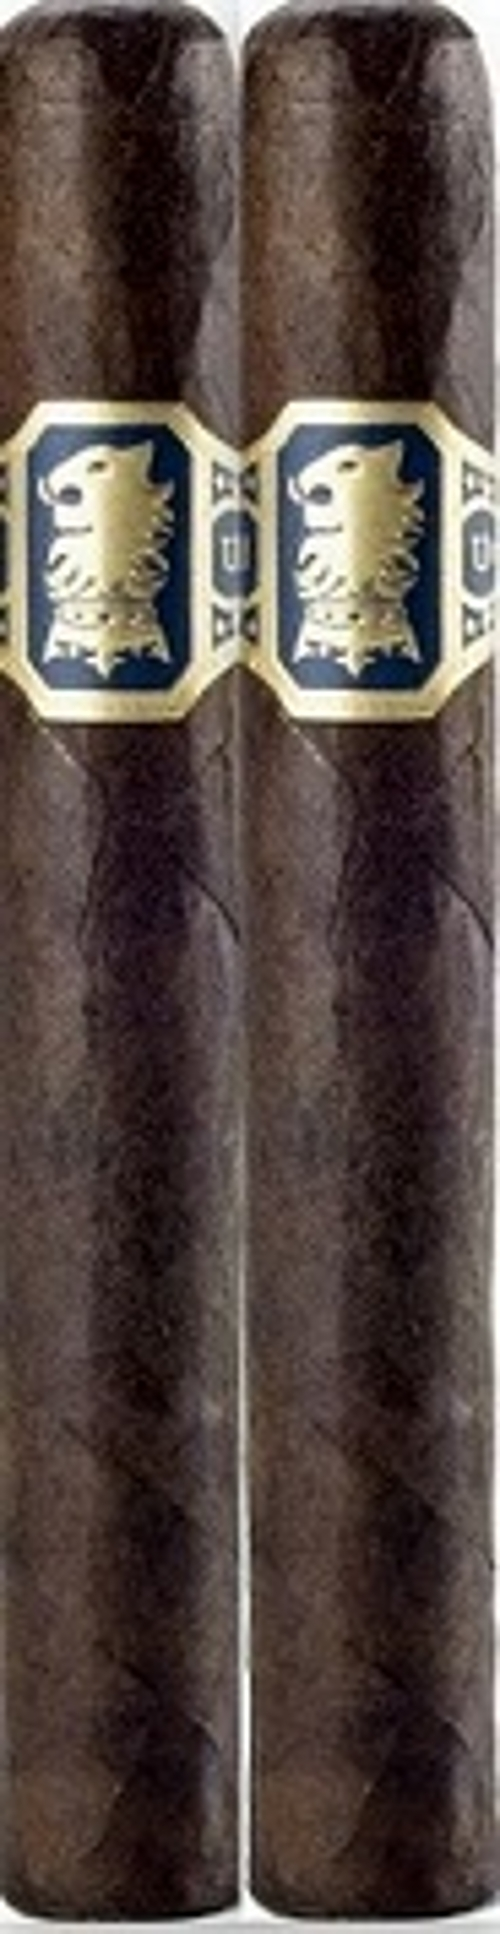 Group C Liga Undercrown Maduro Gran Toro 2 Pack of Cigars..........with Qualifying Purchase Only!